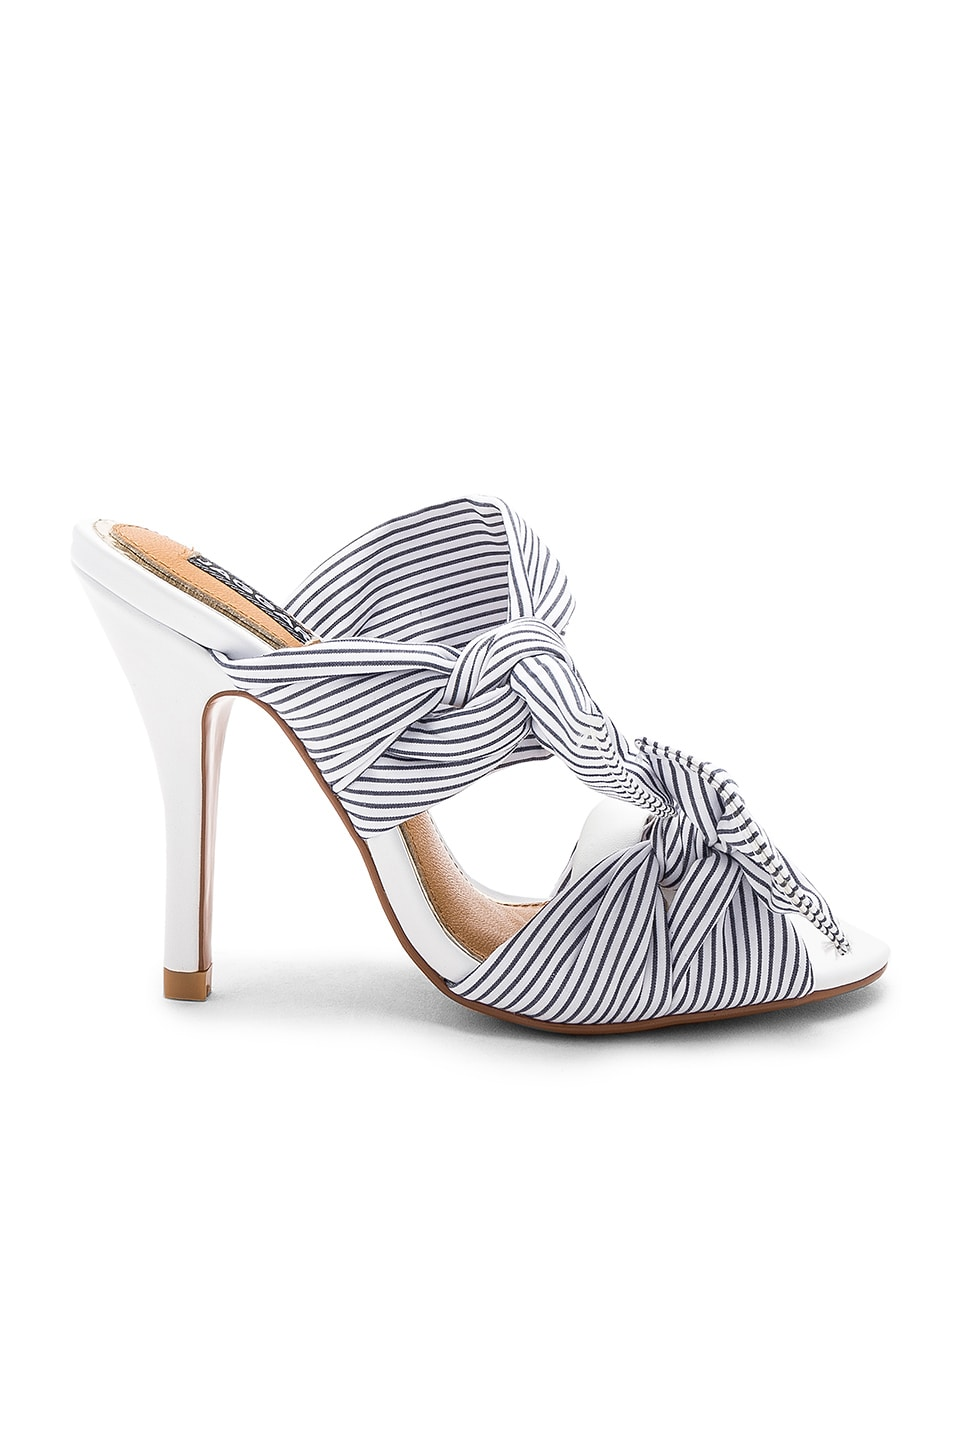 JAGGAR In Touch Striped Heel in Chalk